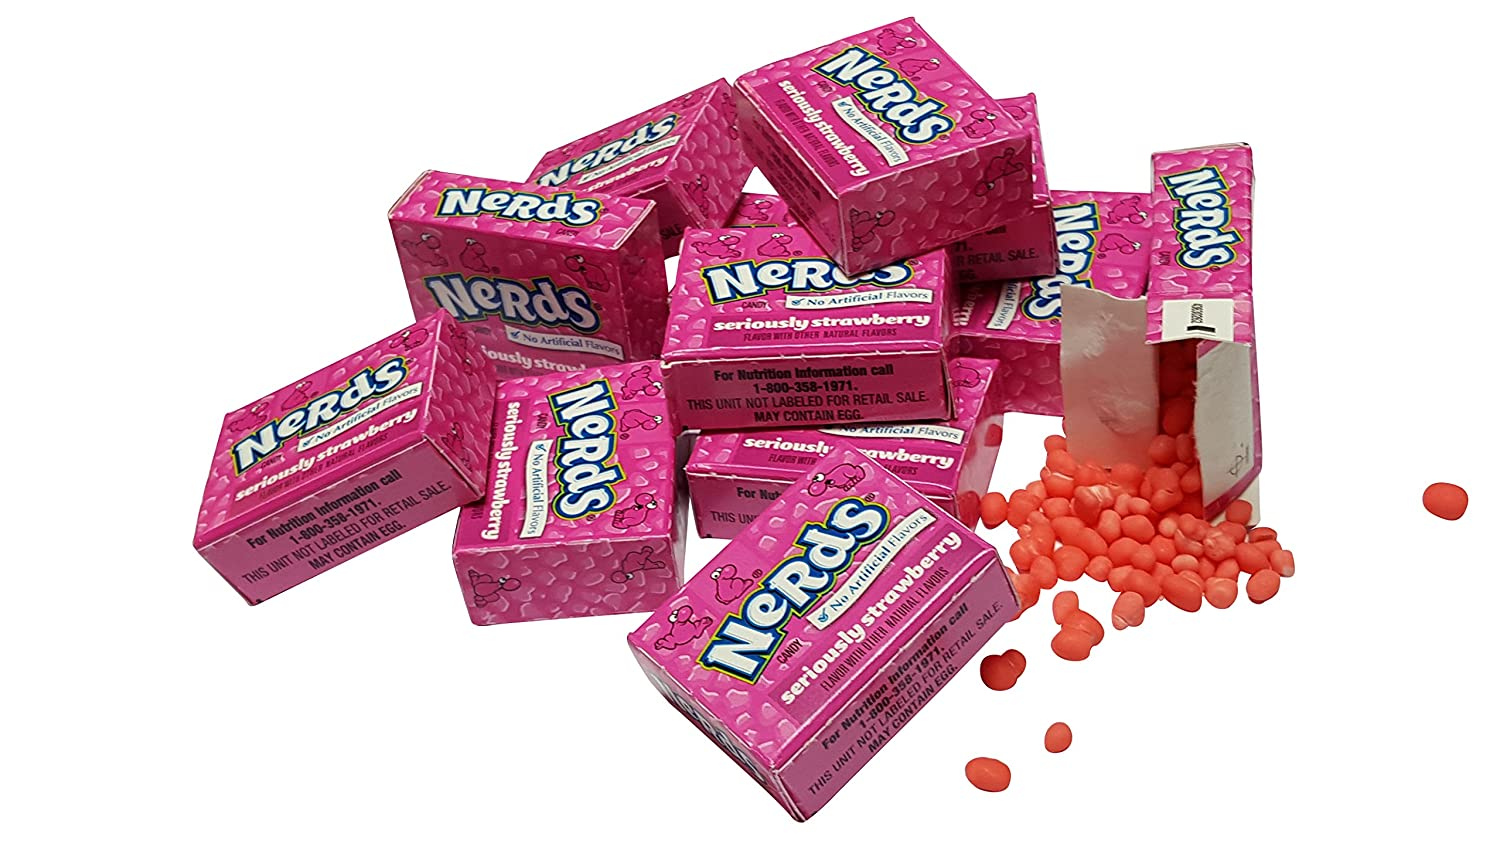 Amazon.com : Wonka Nerds Candy 60 Mini Boxes STRAWBERRY FLAVOR ONLY ...